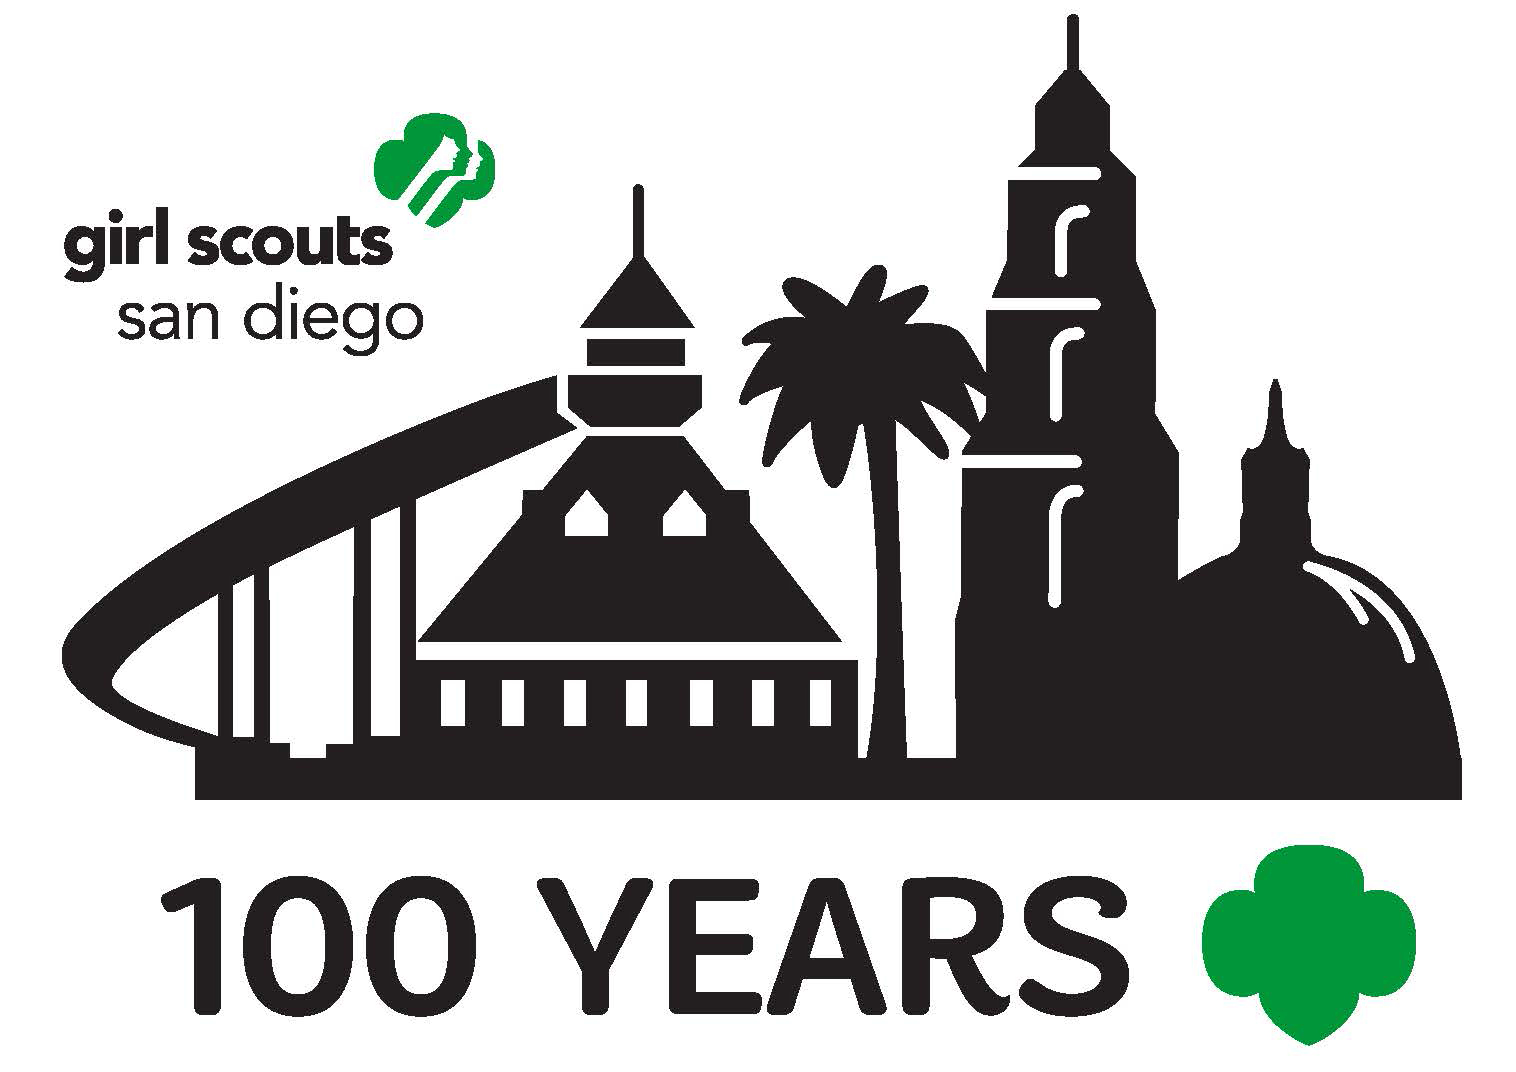 Girl scout san diego